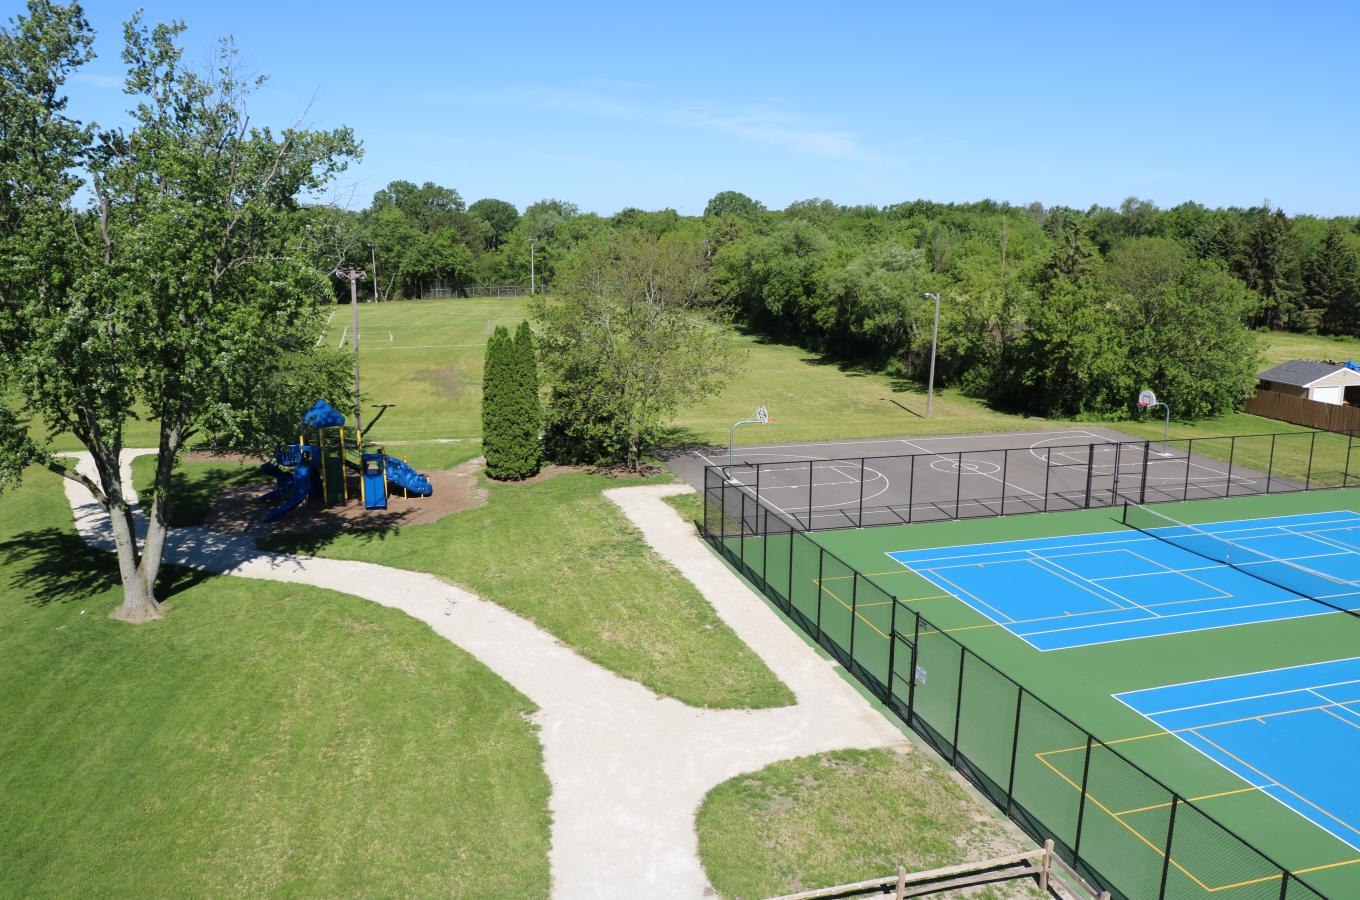 Pleasant Prairie Park playground basketball and tennis courts V Pic